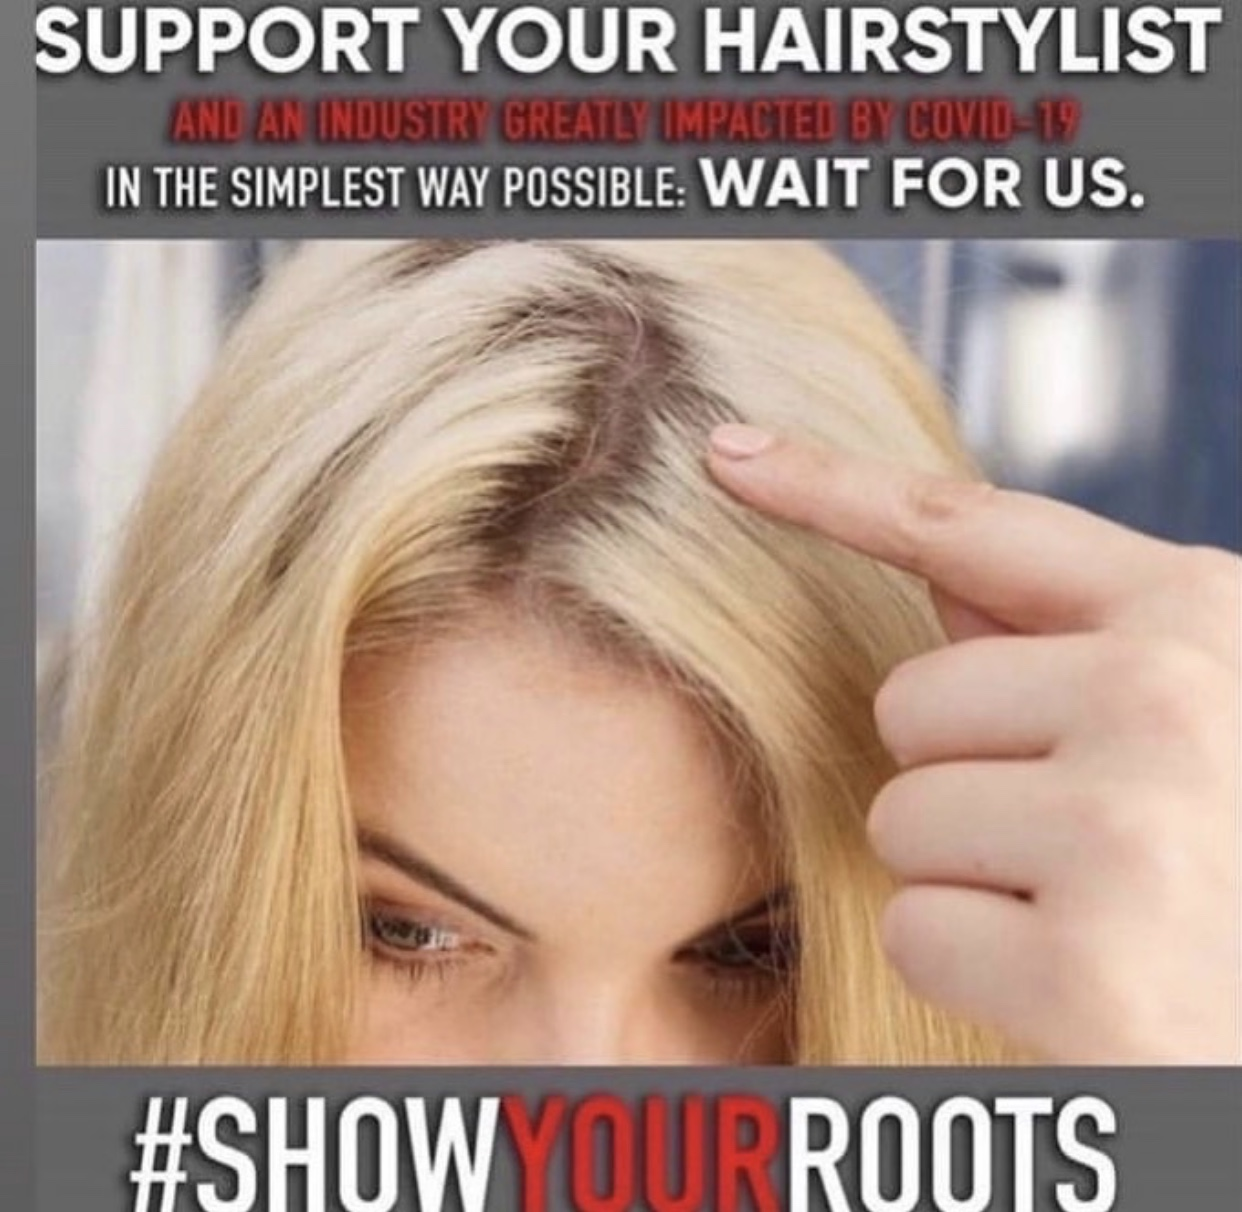 #ShowYourRoots Campaign Urges Clients to